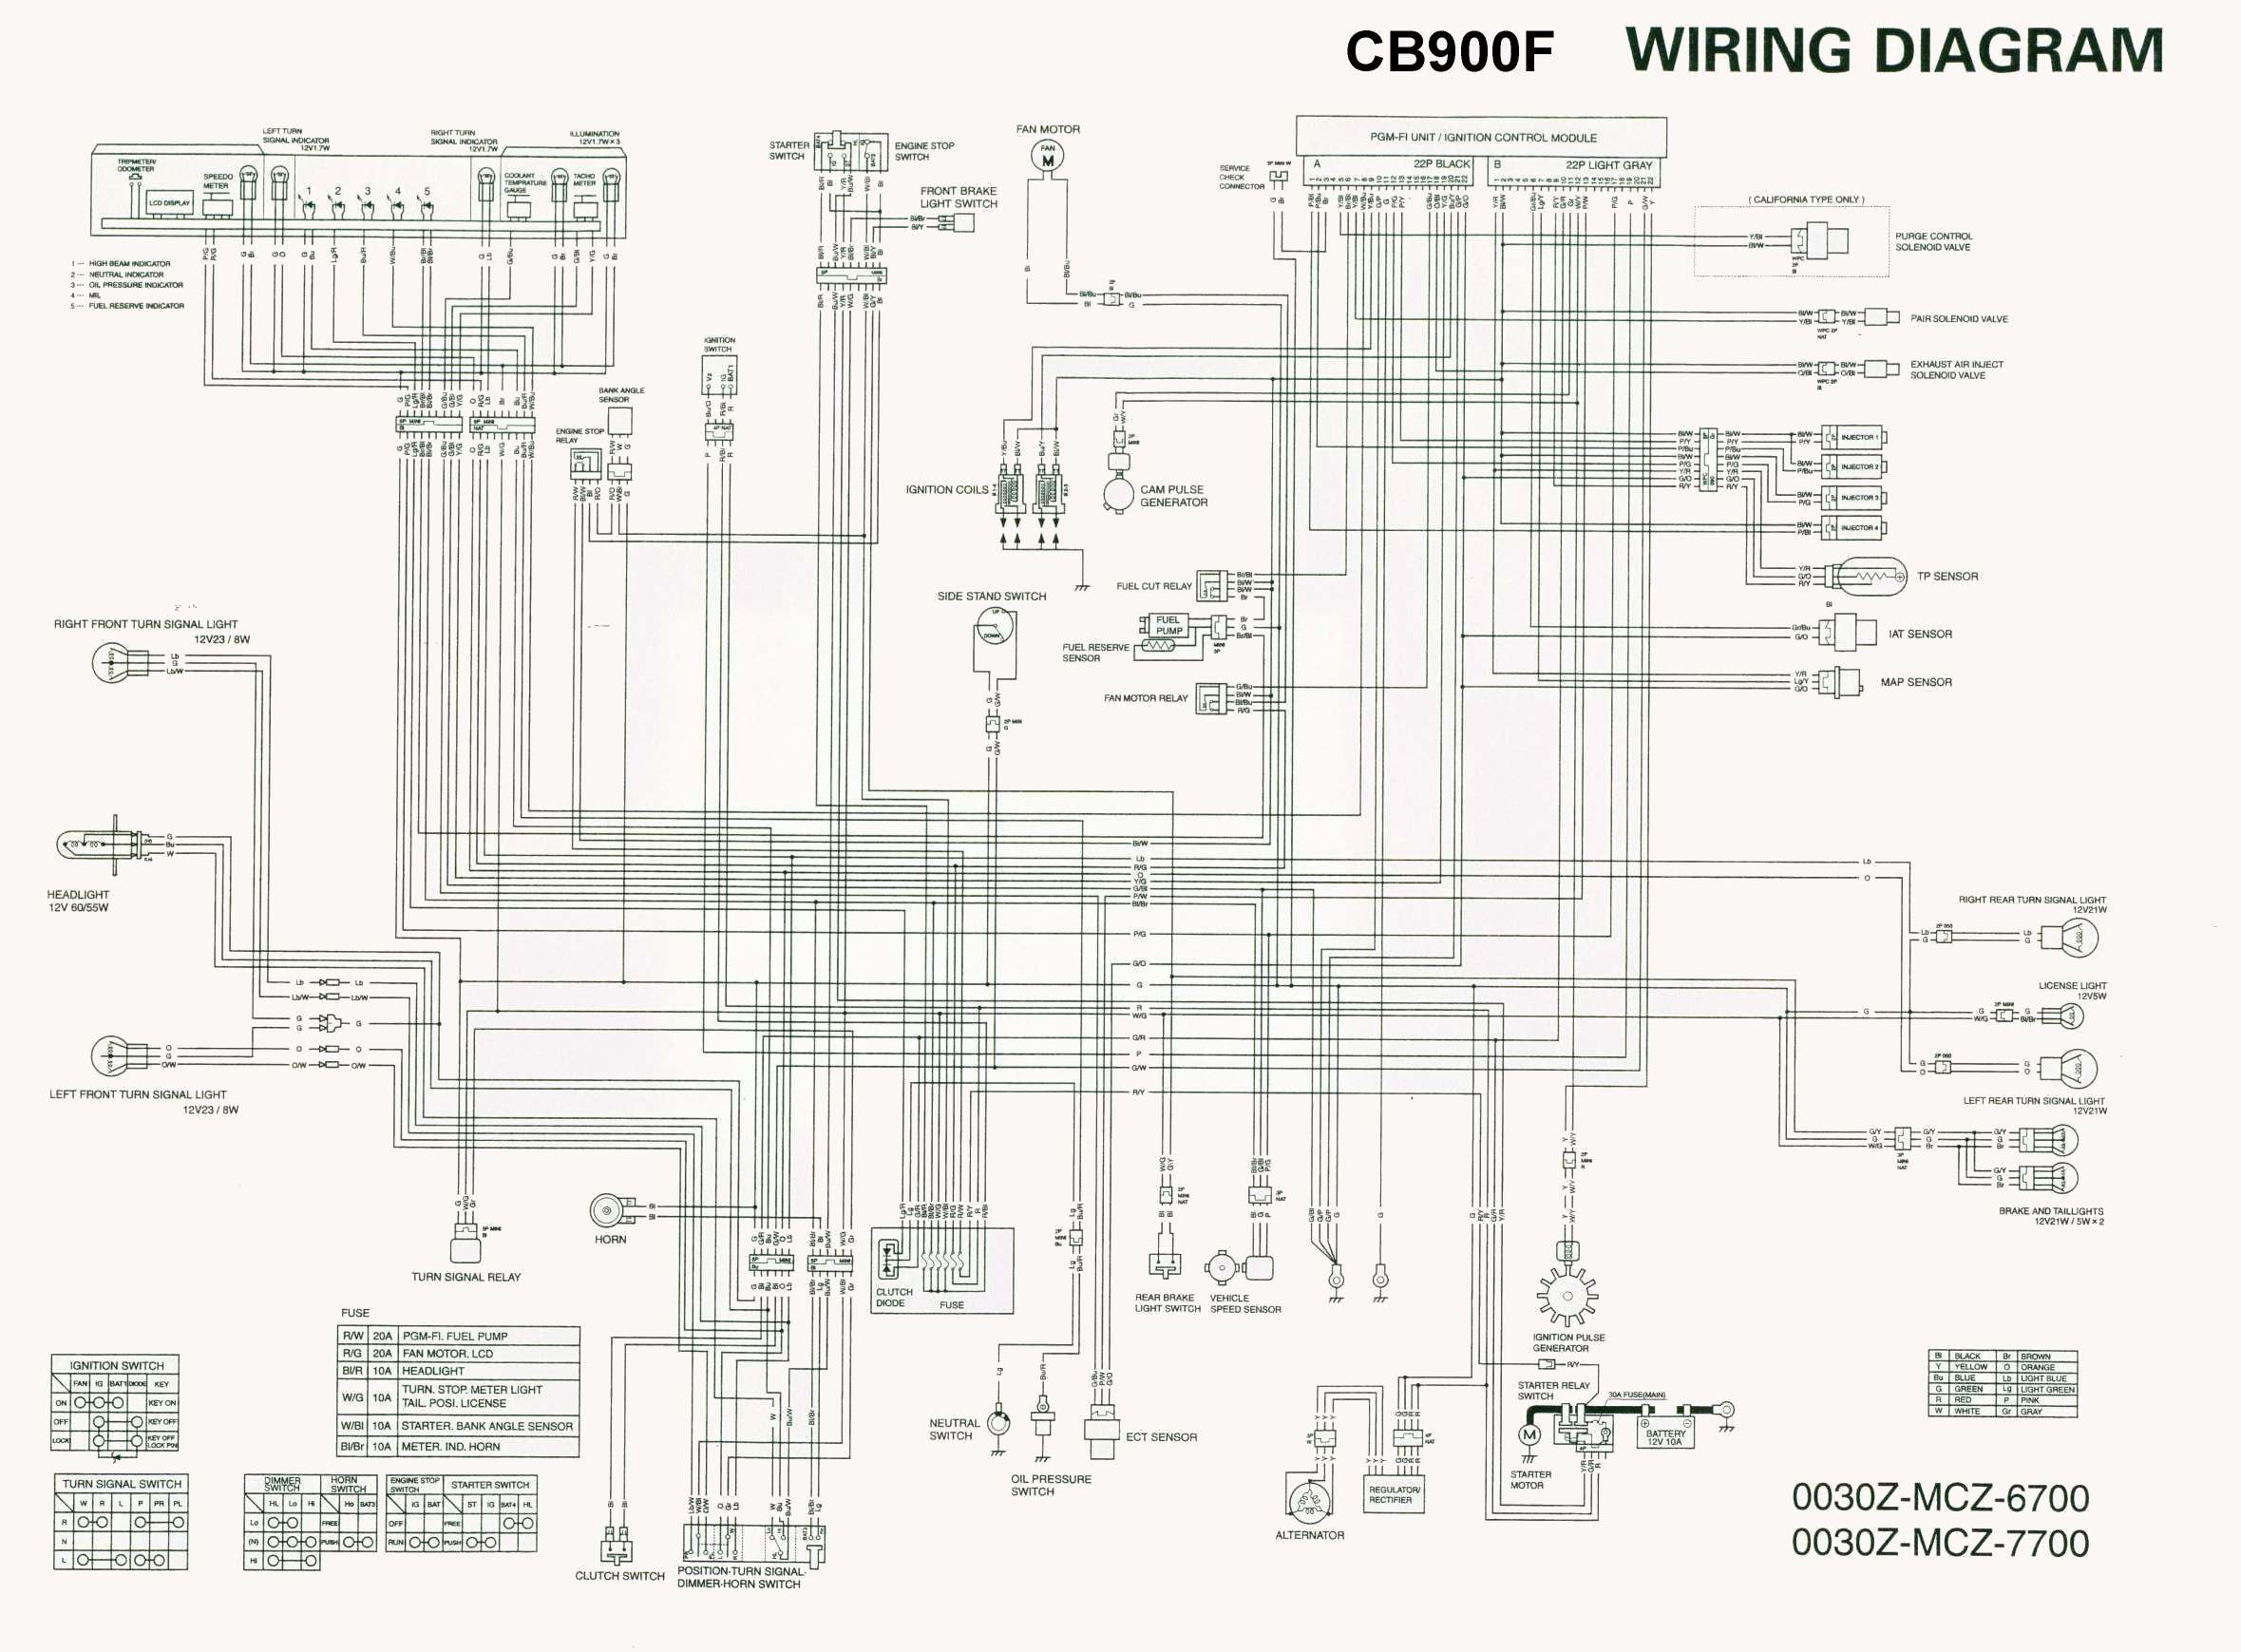 Diagram Enerpac Wiring Diagram Full Version Hd Quality